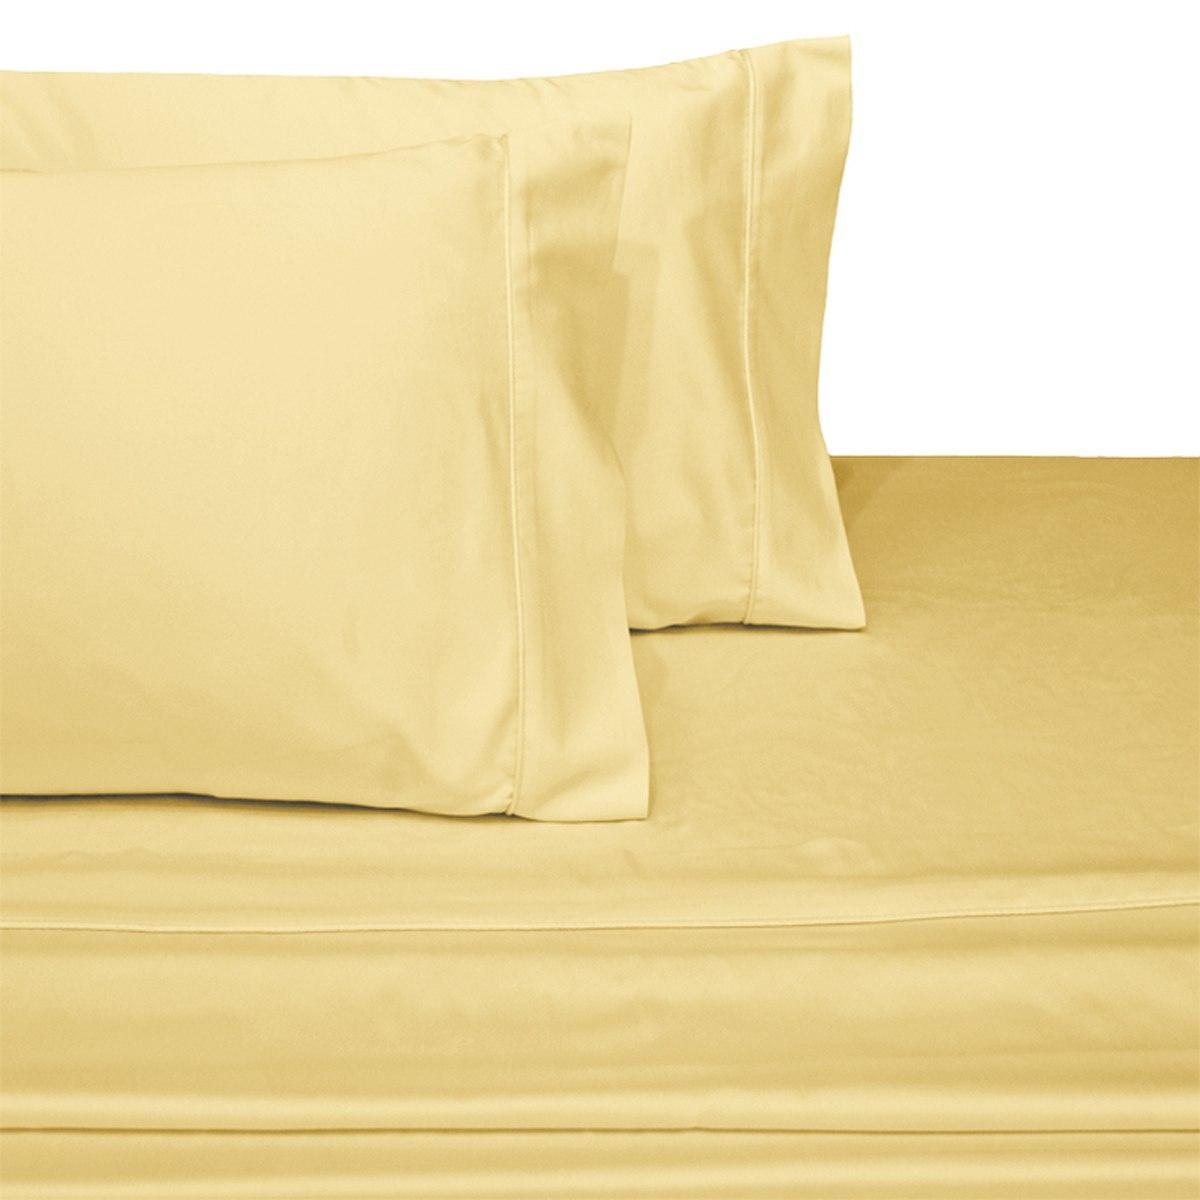 Royal Tradition Microfiber Sheets Super soft & Wrinkle Free Sheet Set-Twin Size - Navy